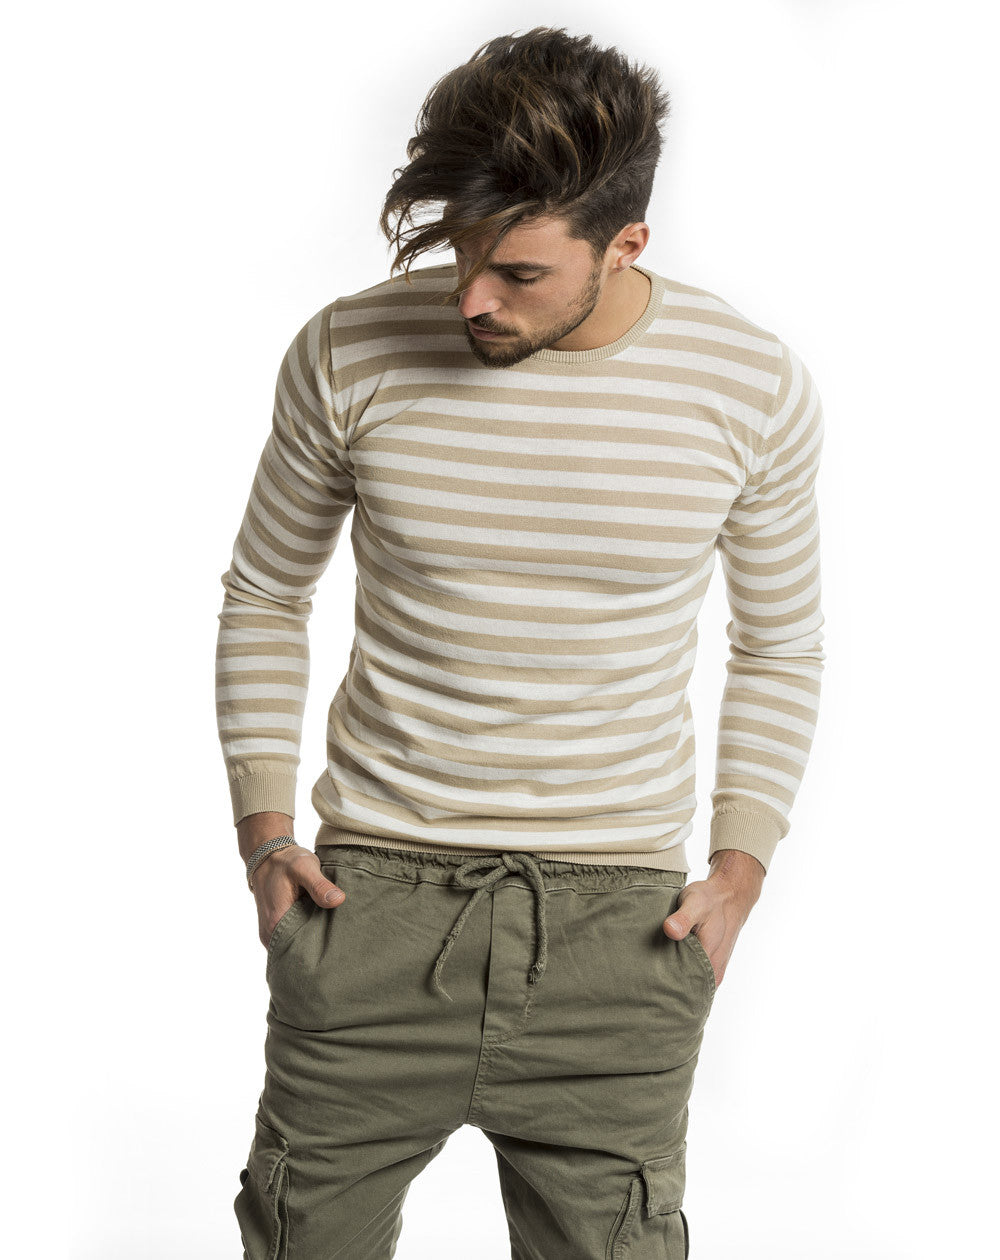 MEN'S CLOTHING | BEIGE AND WHITE STRIPED SWEATER | LIGHTWEIGHT COTTON KNIT | CREW NECK | LONG SLEEVE | RIBBED CUFFS | RIBBED HEM | COTTON | NOHOW STREET COUTURE | NOHOW